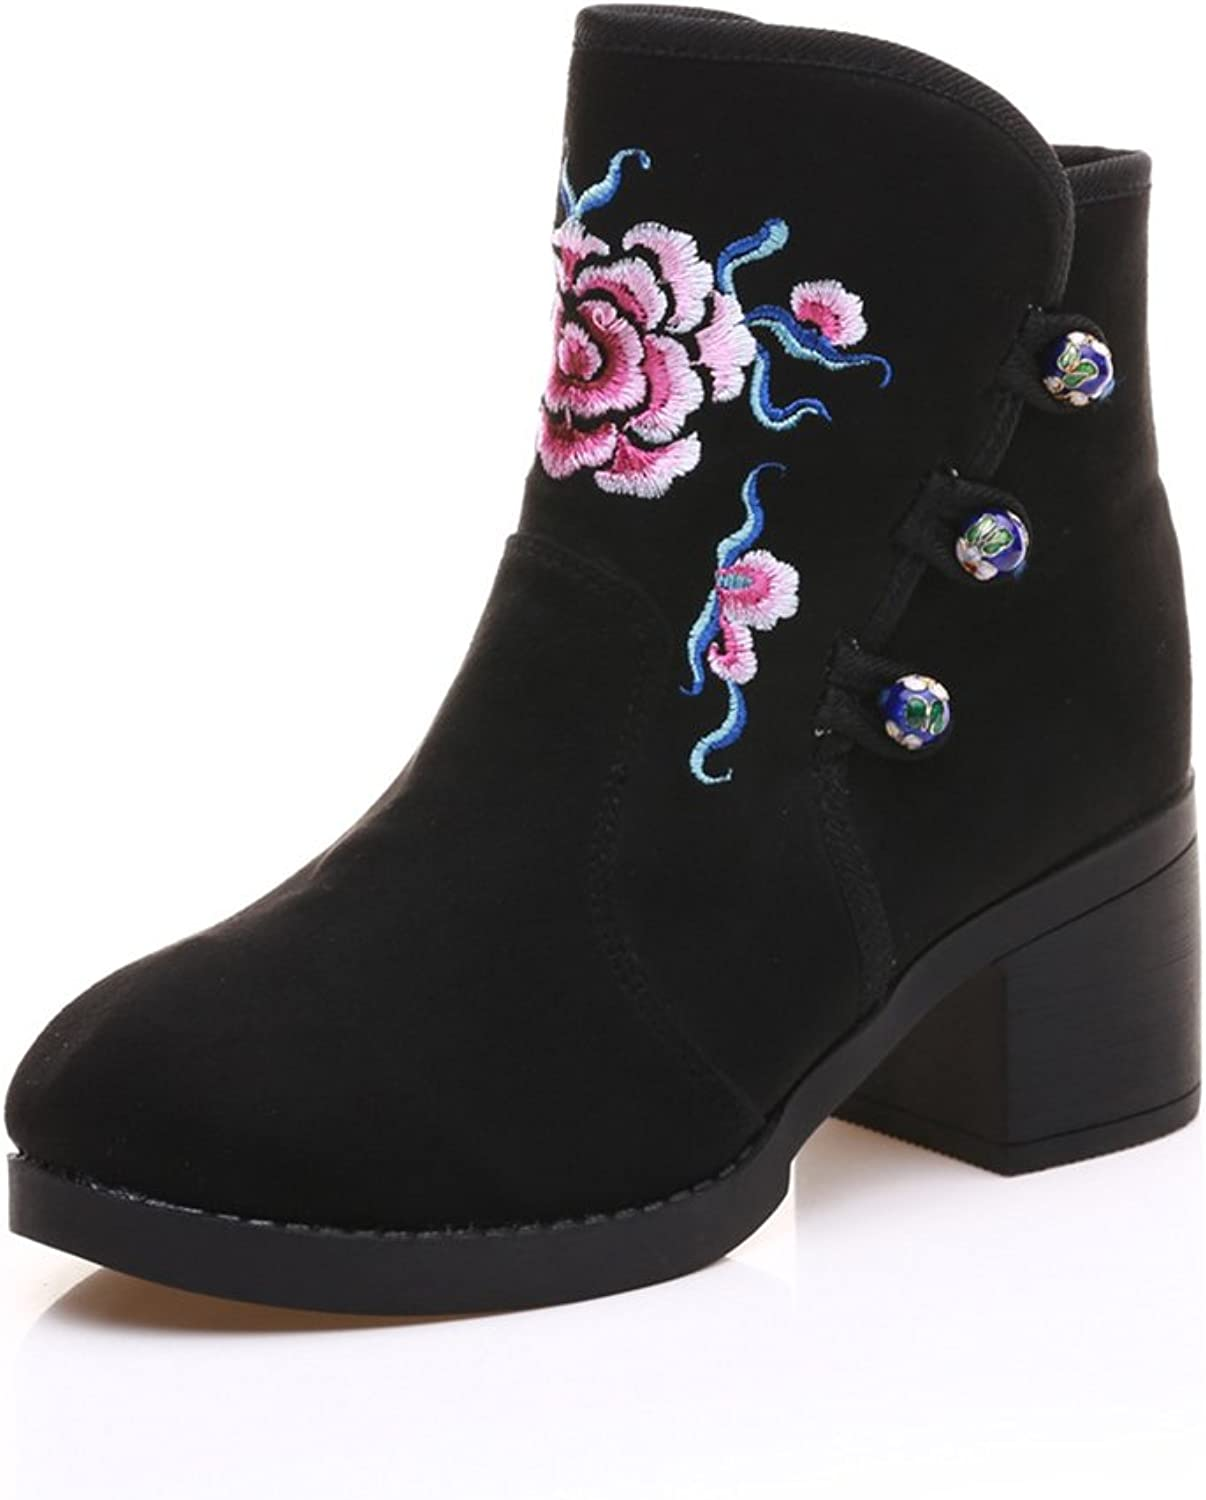 Veowalk Winter Women's Cotton Fabric Mid-Calf Boots Ladies Begonia Embroidered Puppy Heel shoes